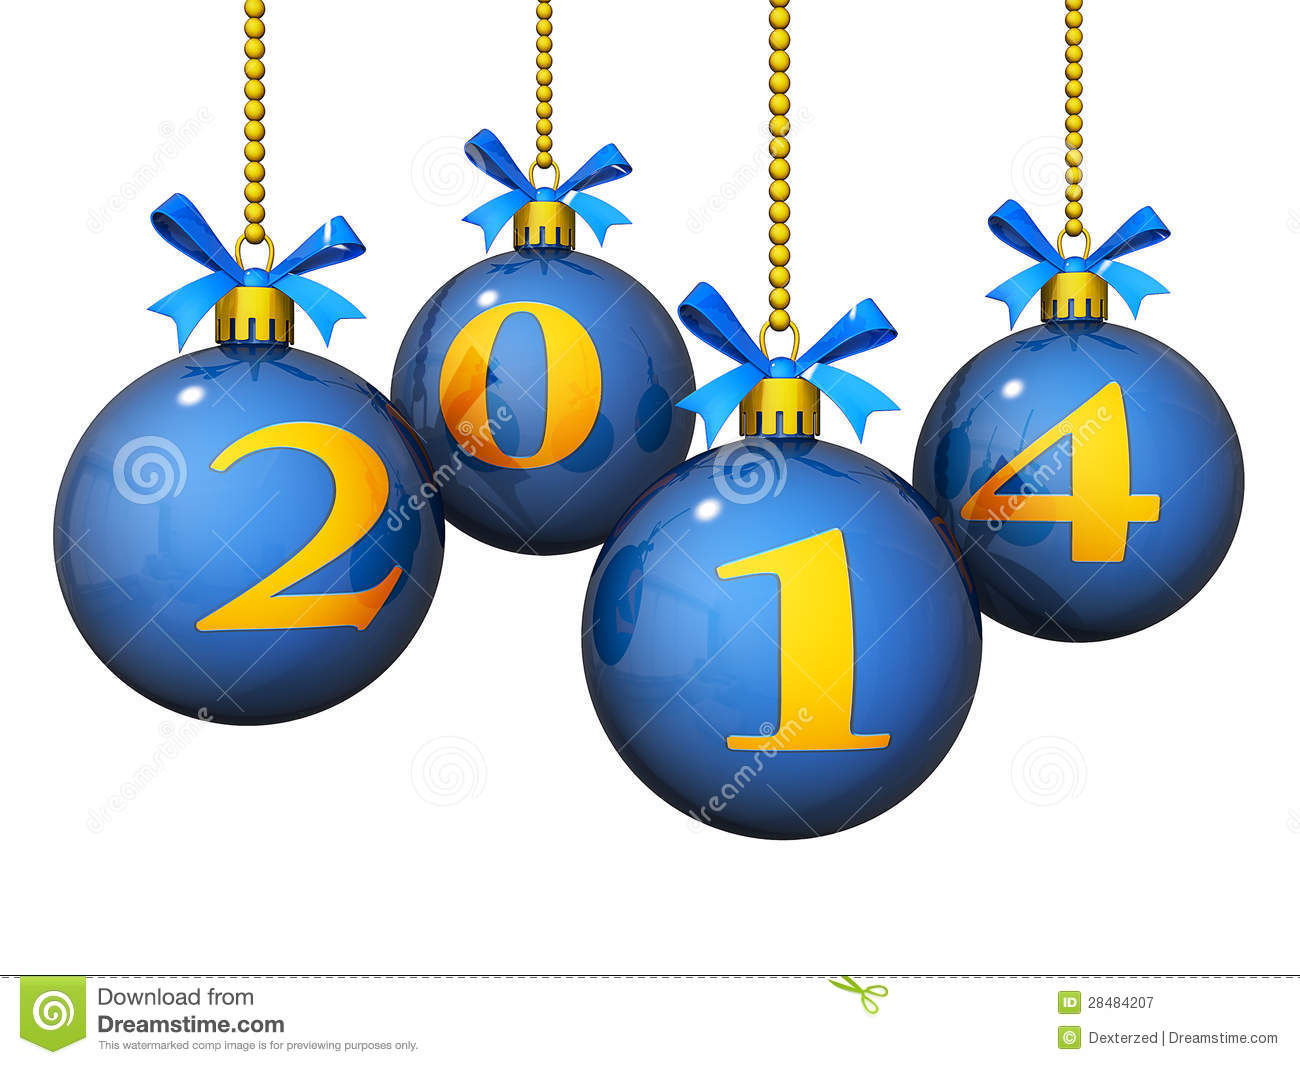 Royalty Free Stock Photography: 2014 New Year Ornaments